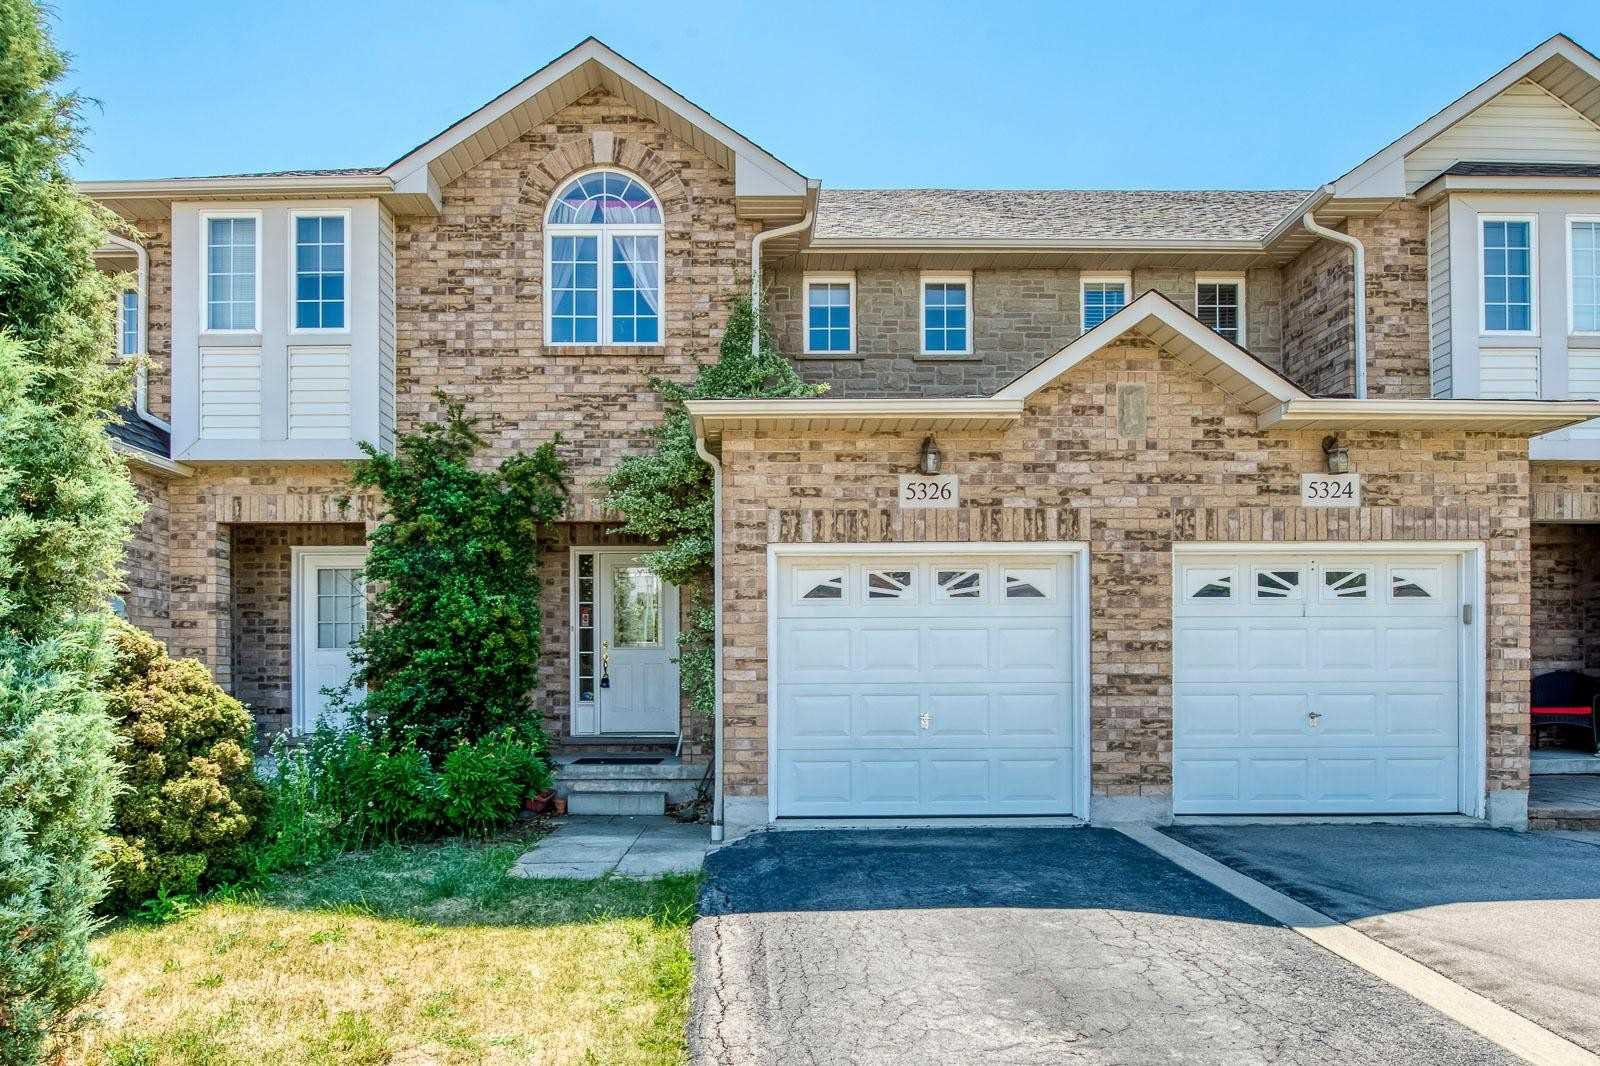 Main Photo: 5326 Dryden Avenue in Burlington: Orchard House (2-Storey) for lease : MLS®# W4815413